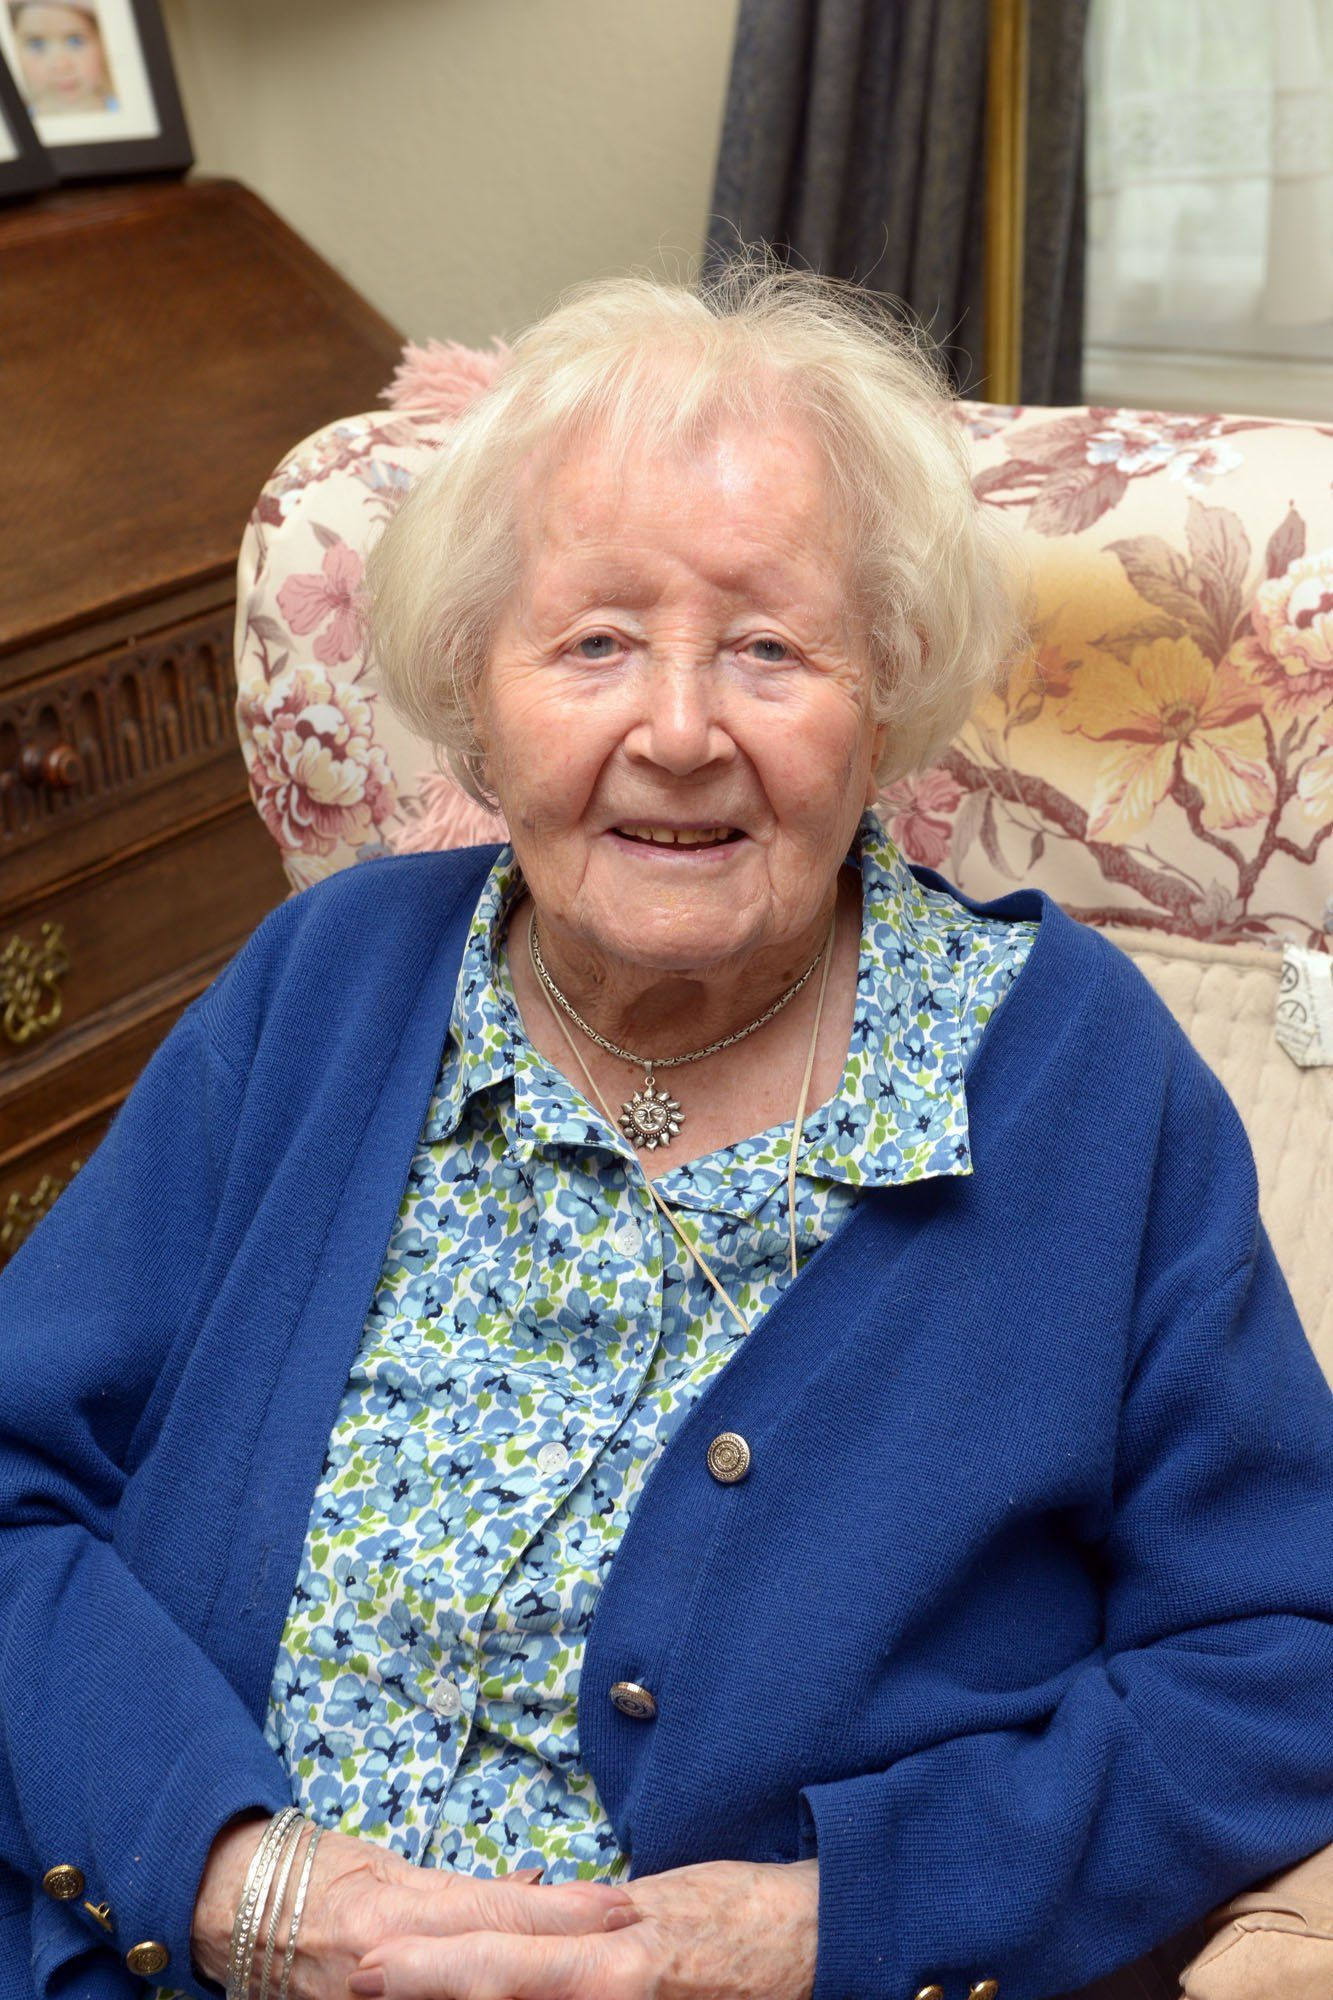 107-Year-Old Says Daily Glass Of Whisky Is The Key To Her